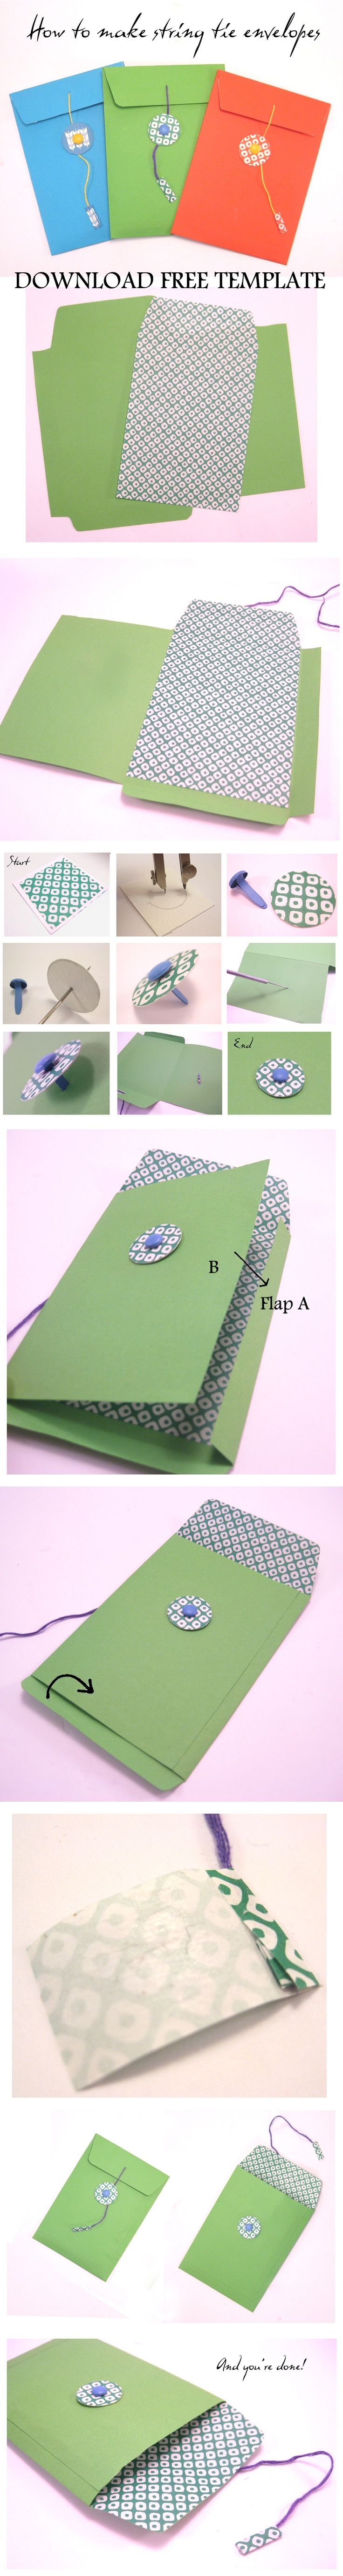 Wedding Gift Envelope Template : can customise them to match your Wedding Stationary or your wedding ...